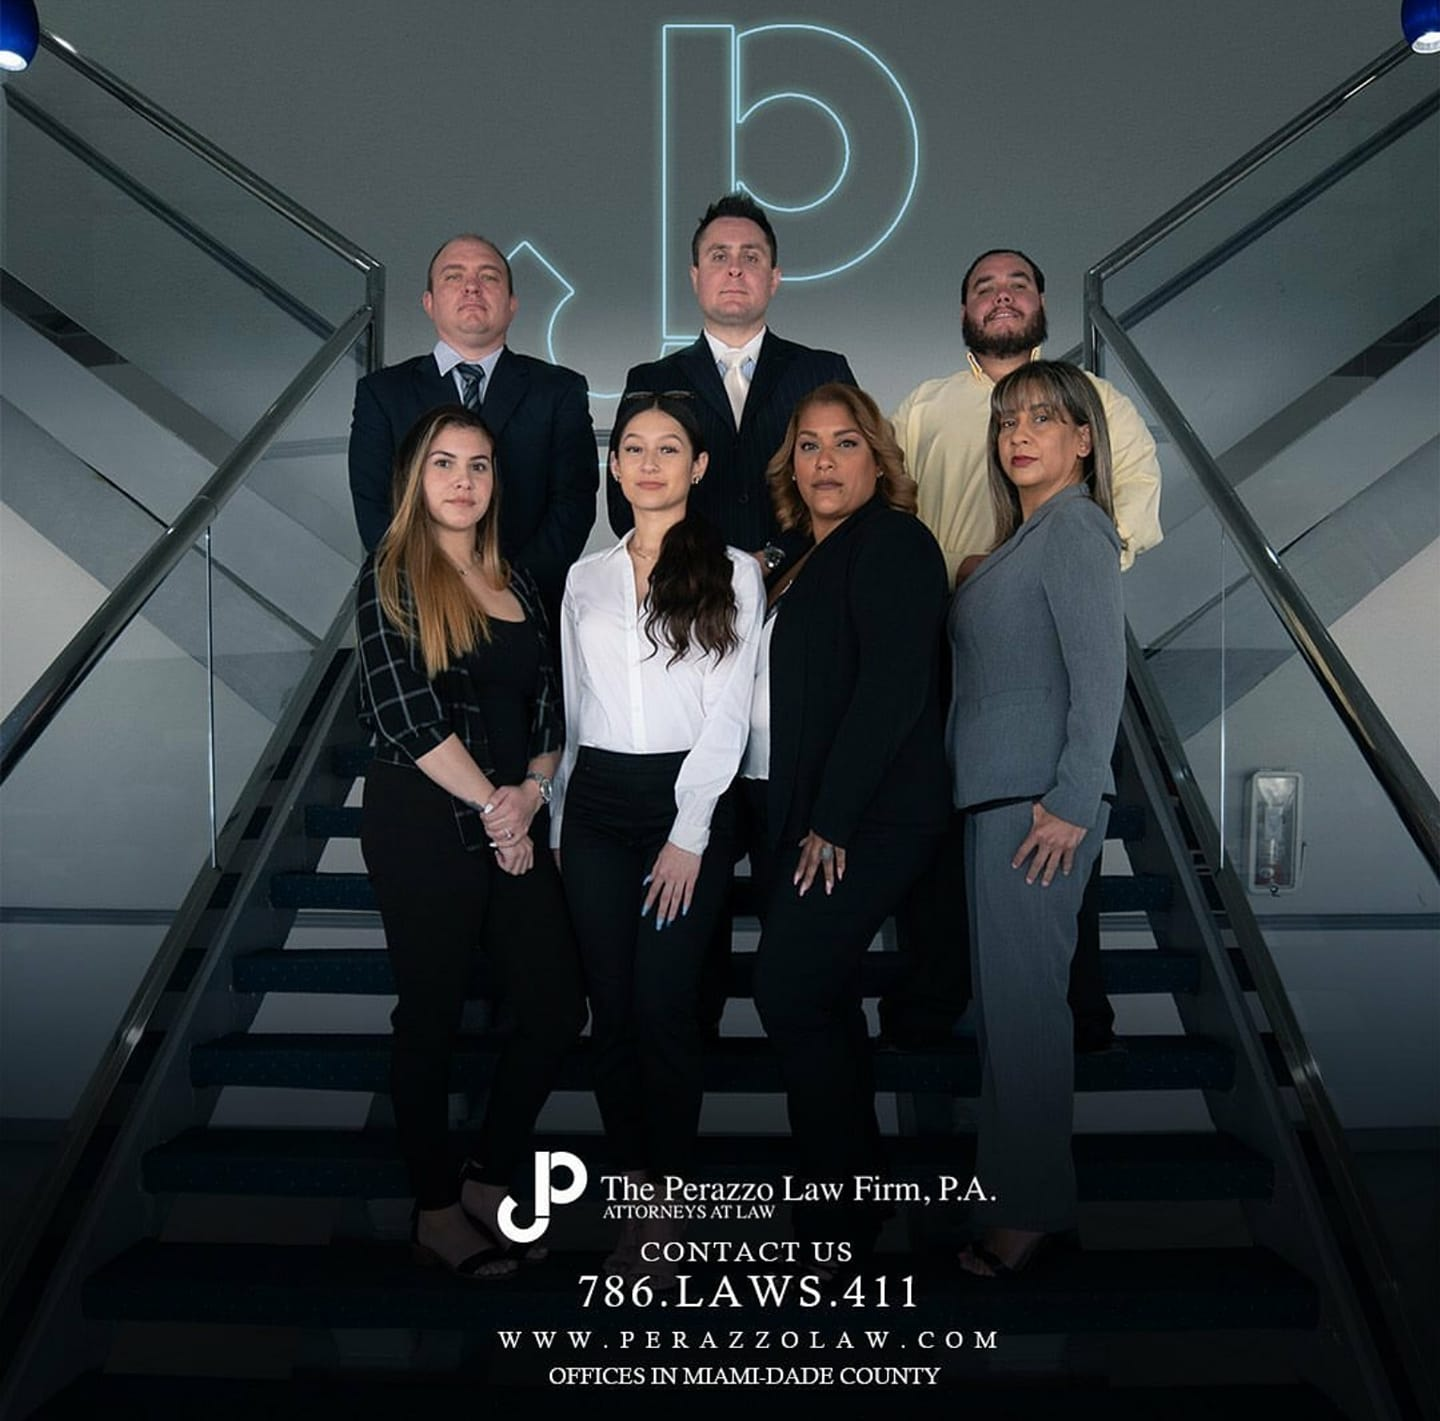 personal injury law firm in miami